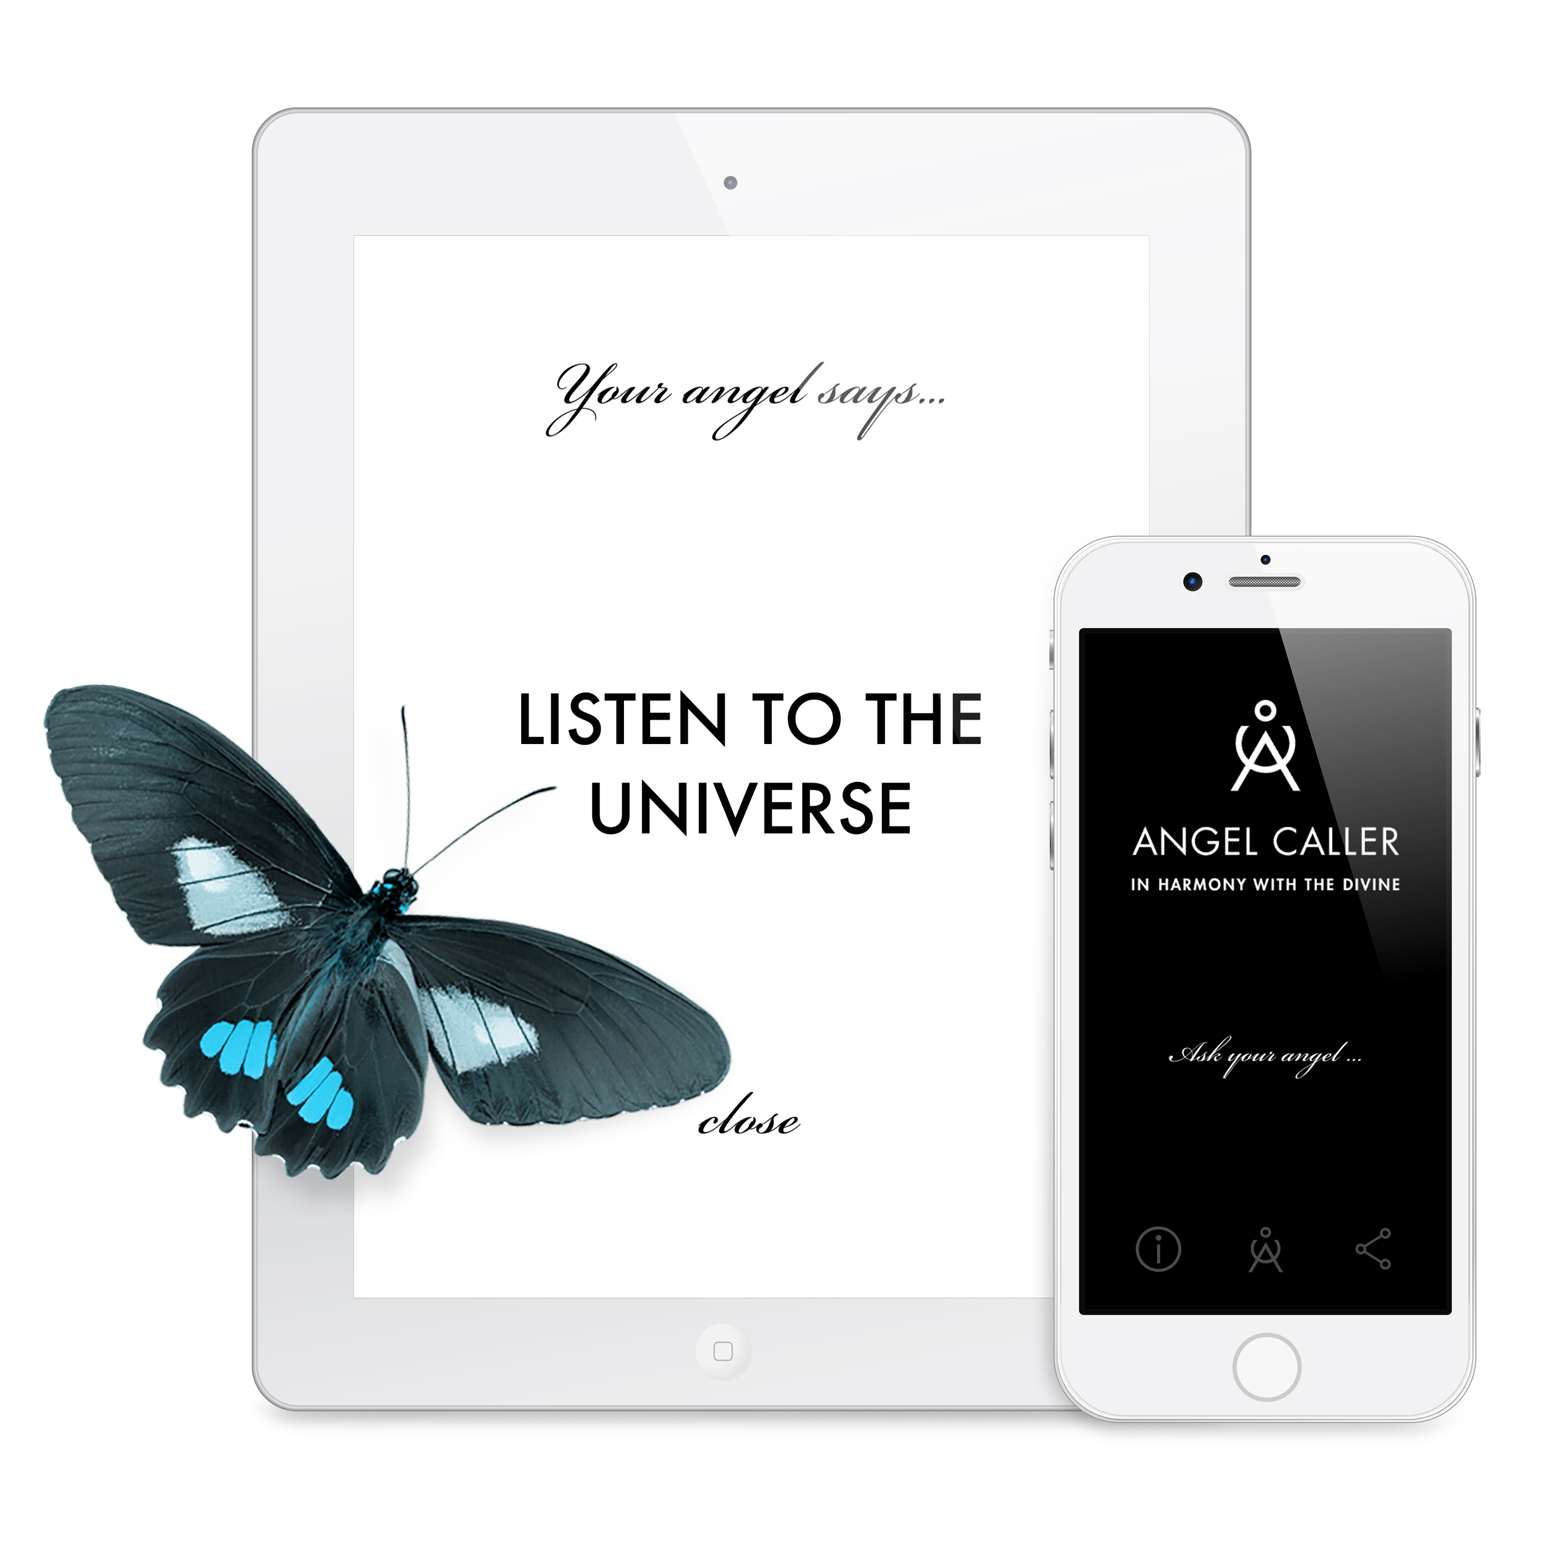 ANGEL_CALLER-In_Harmony_With_The_Divine-Free_App-Divination.jpg